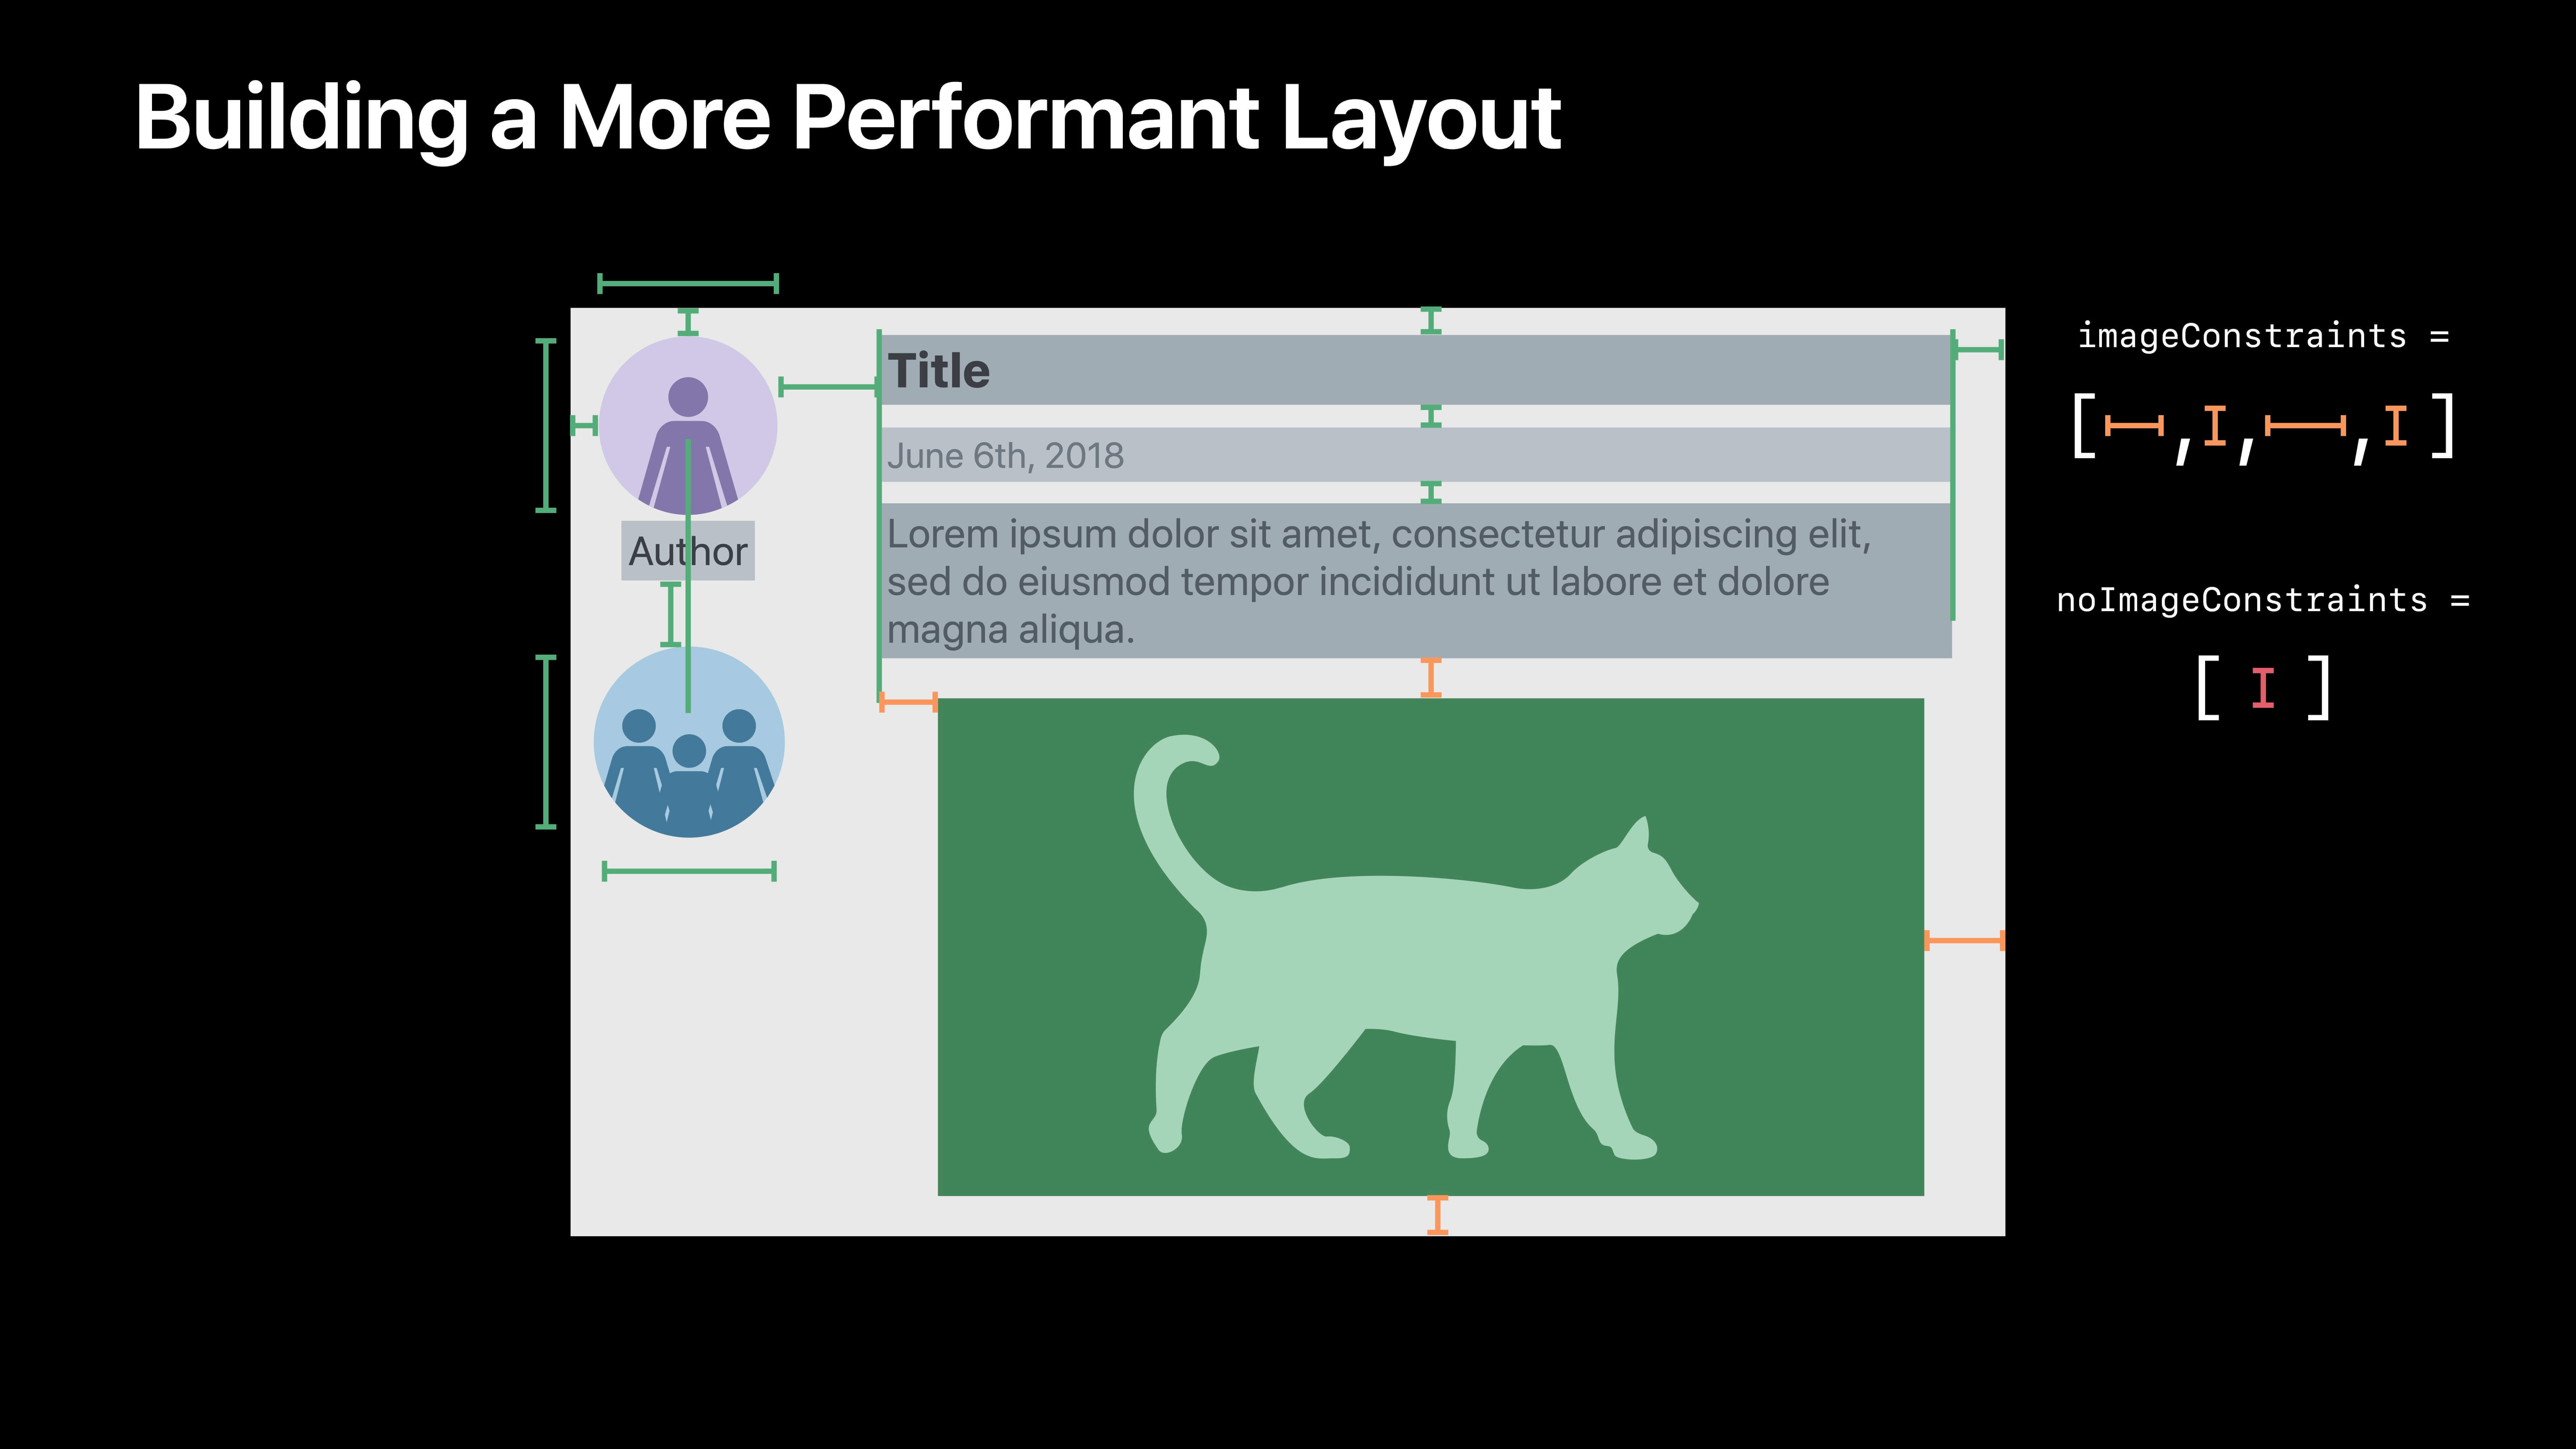 04-Building-a-More-Performant-Layout.jpg